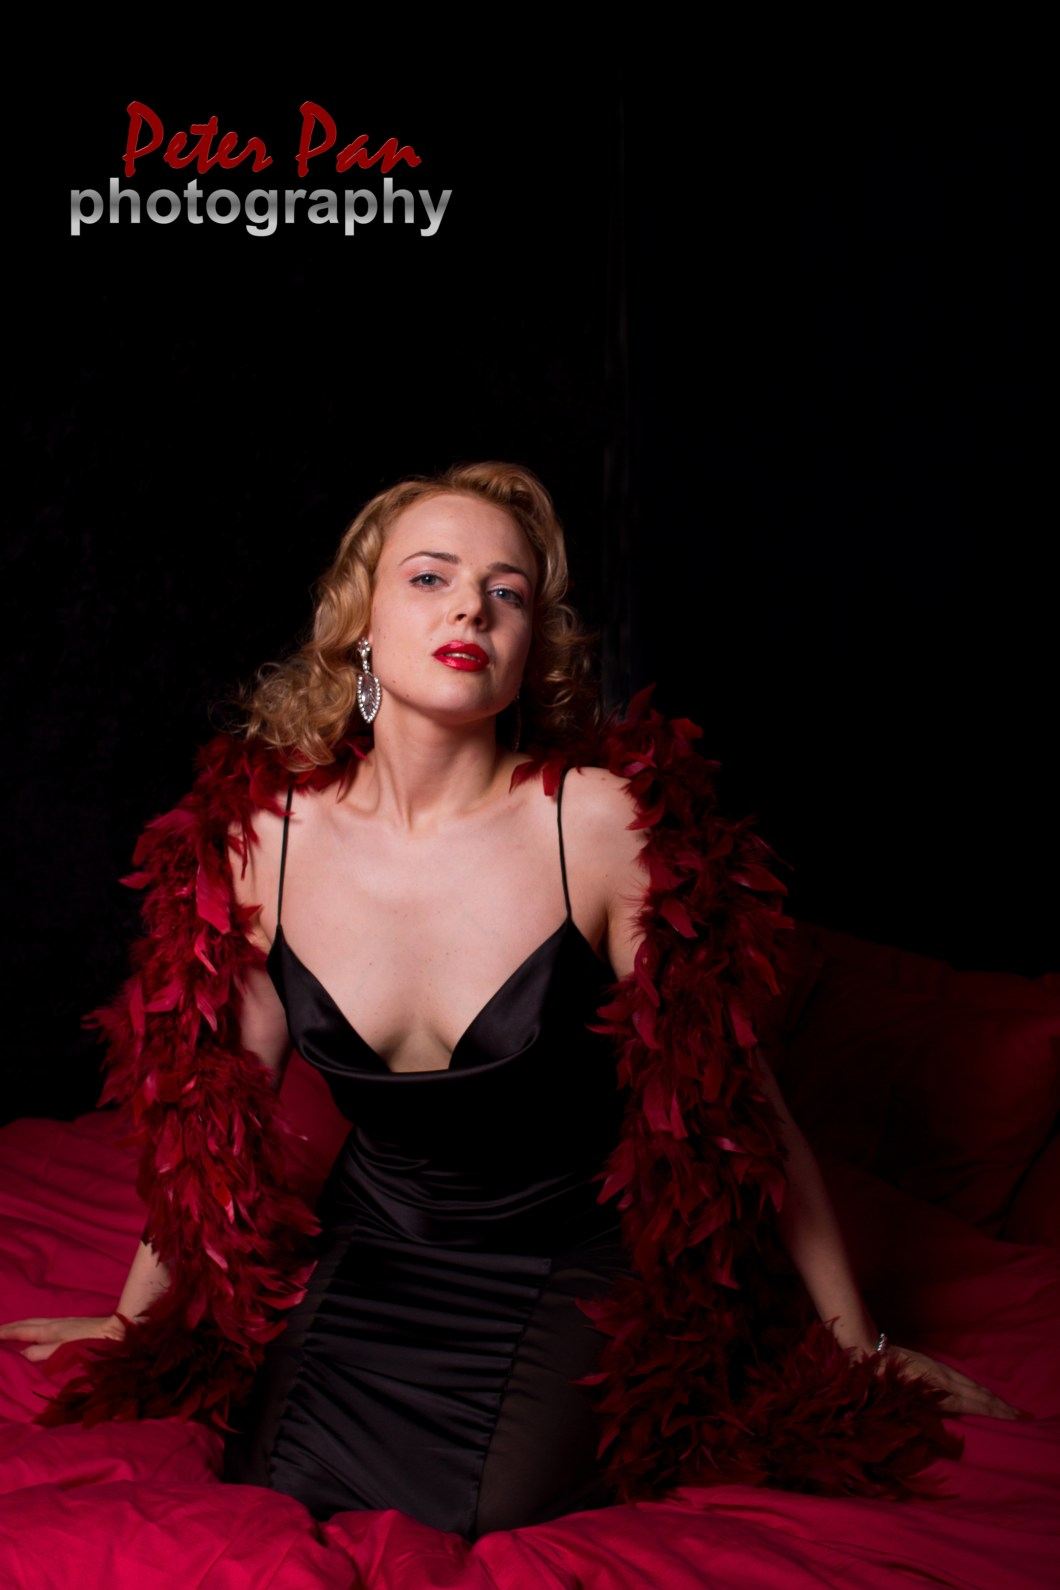 Lola Vavoom image with red boa and black dress by Peter Pan photography